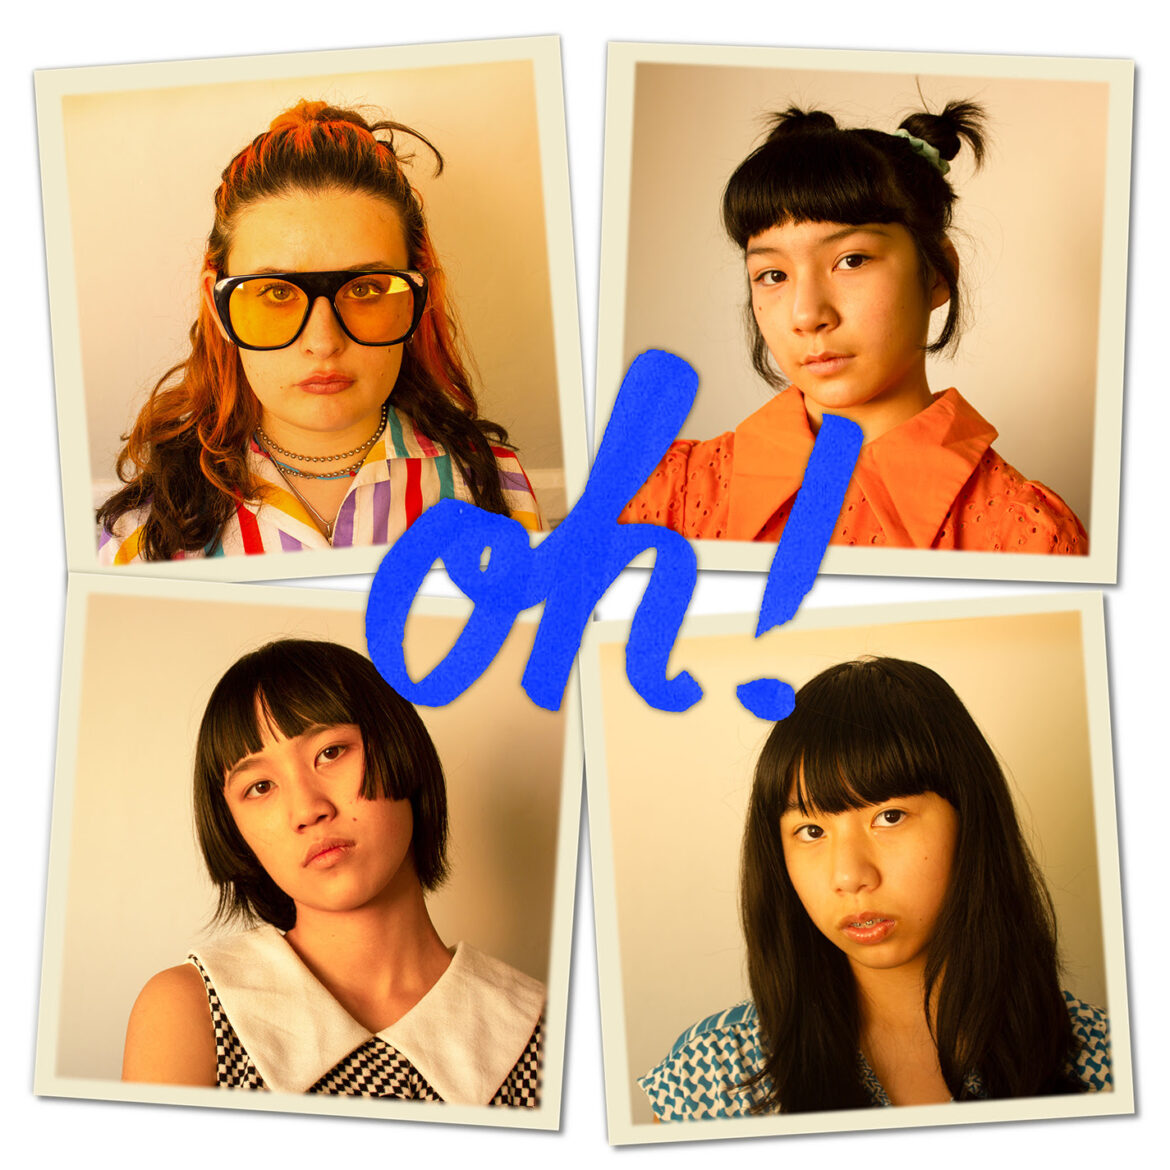 NEWS: The Linda Linda's release new riot-girl single 'Oh!'